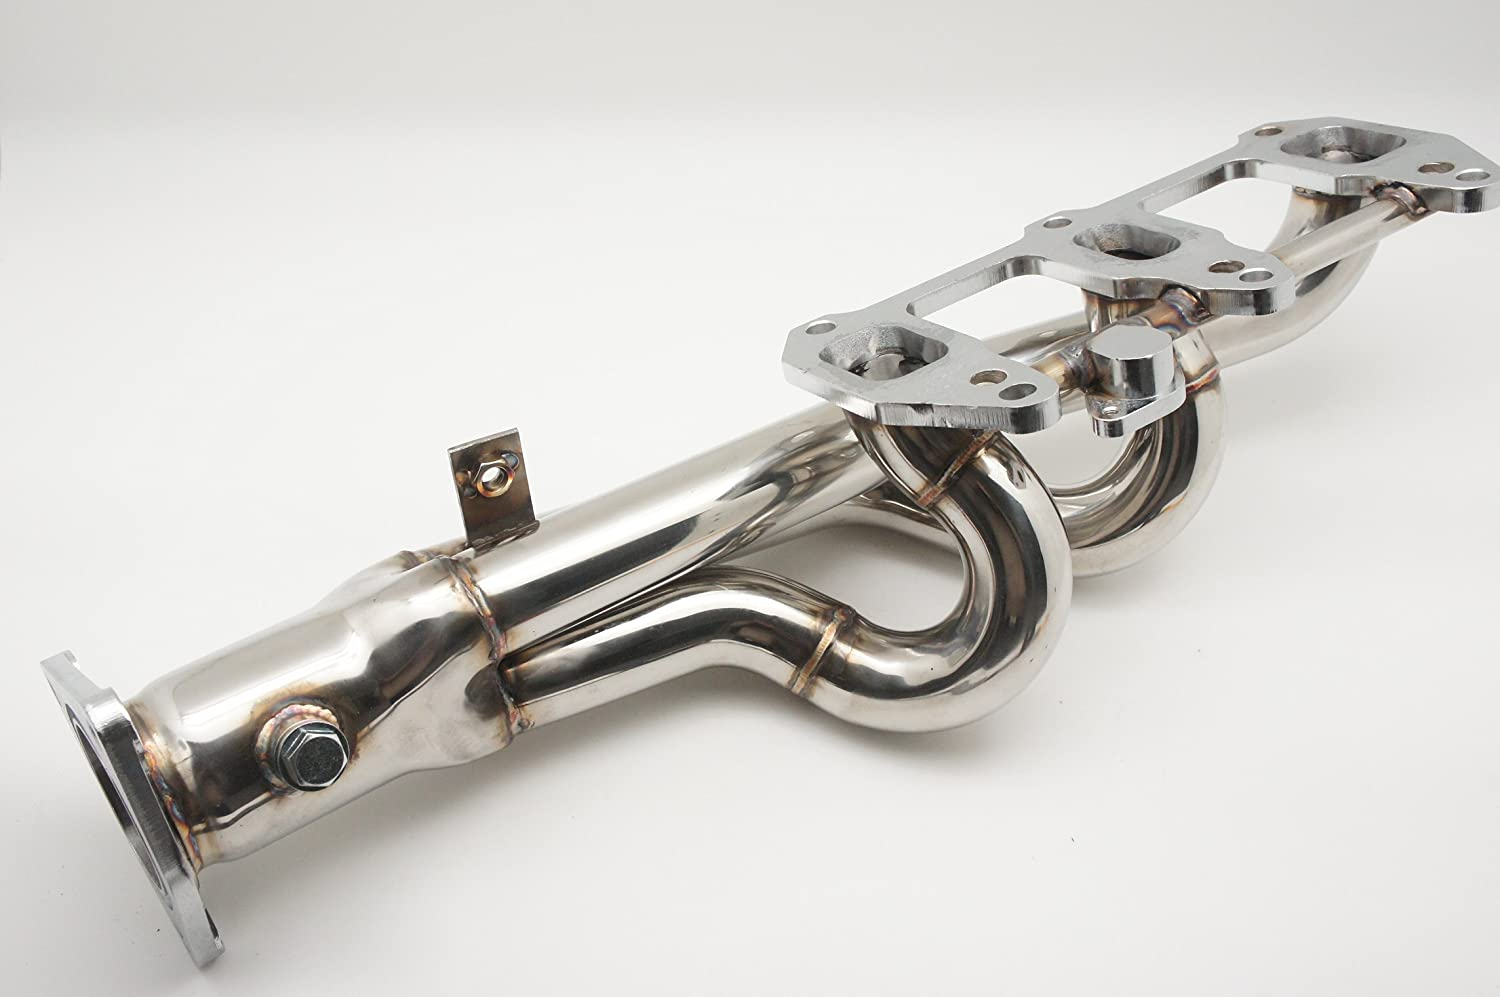 Autobahn88 Stainless Steel Exhaust Header Manifold, fits for Mazda RX-8  SE3P 13B-MSP Rotary Engine